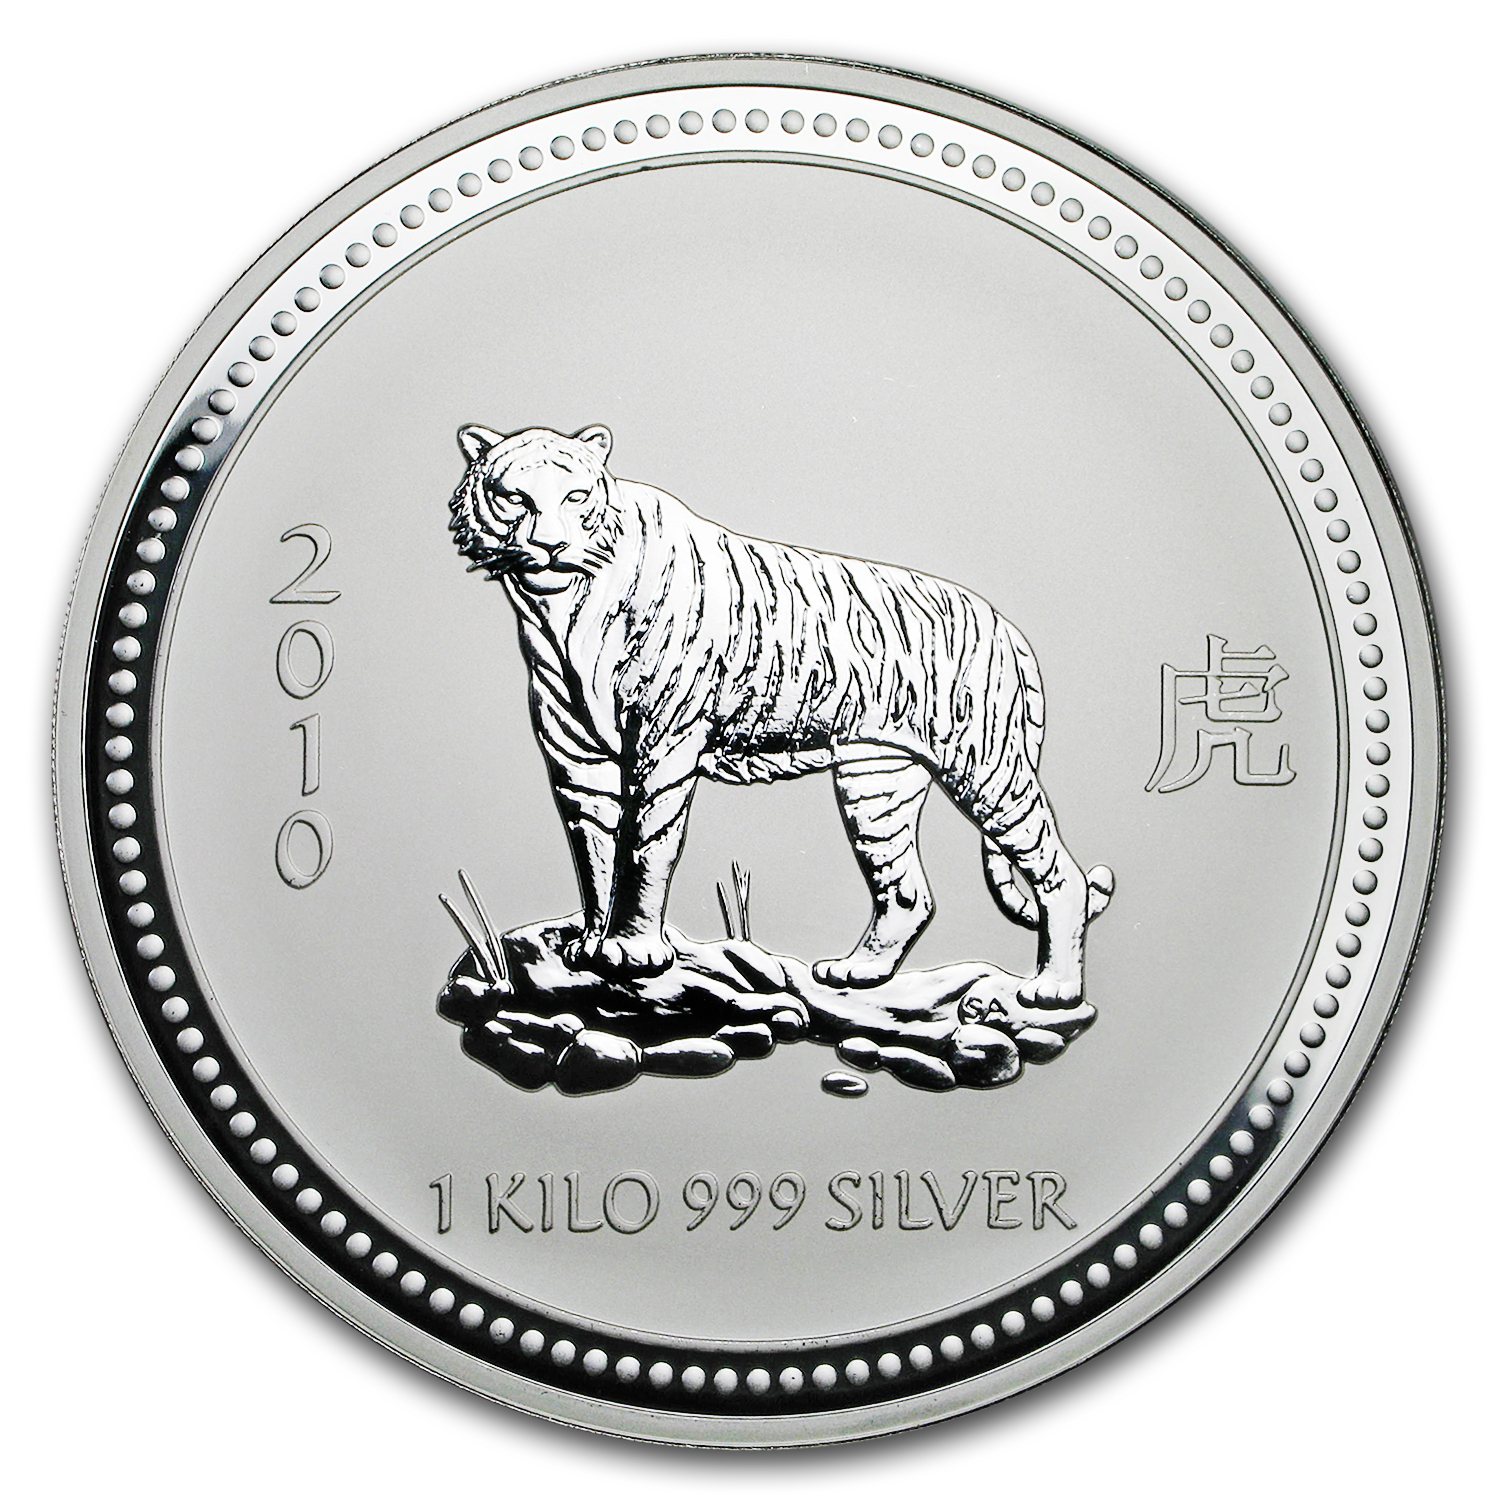 2010 Australia 1 kilo Silver Year of the Tiger BU (Series I)